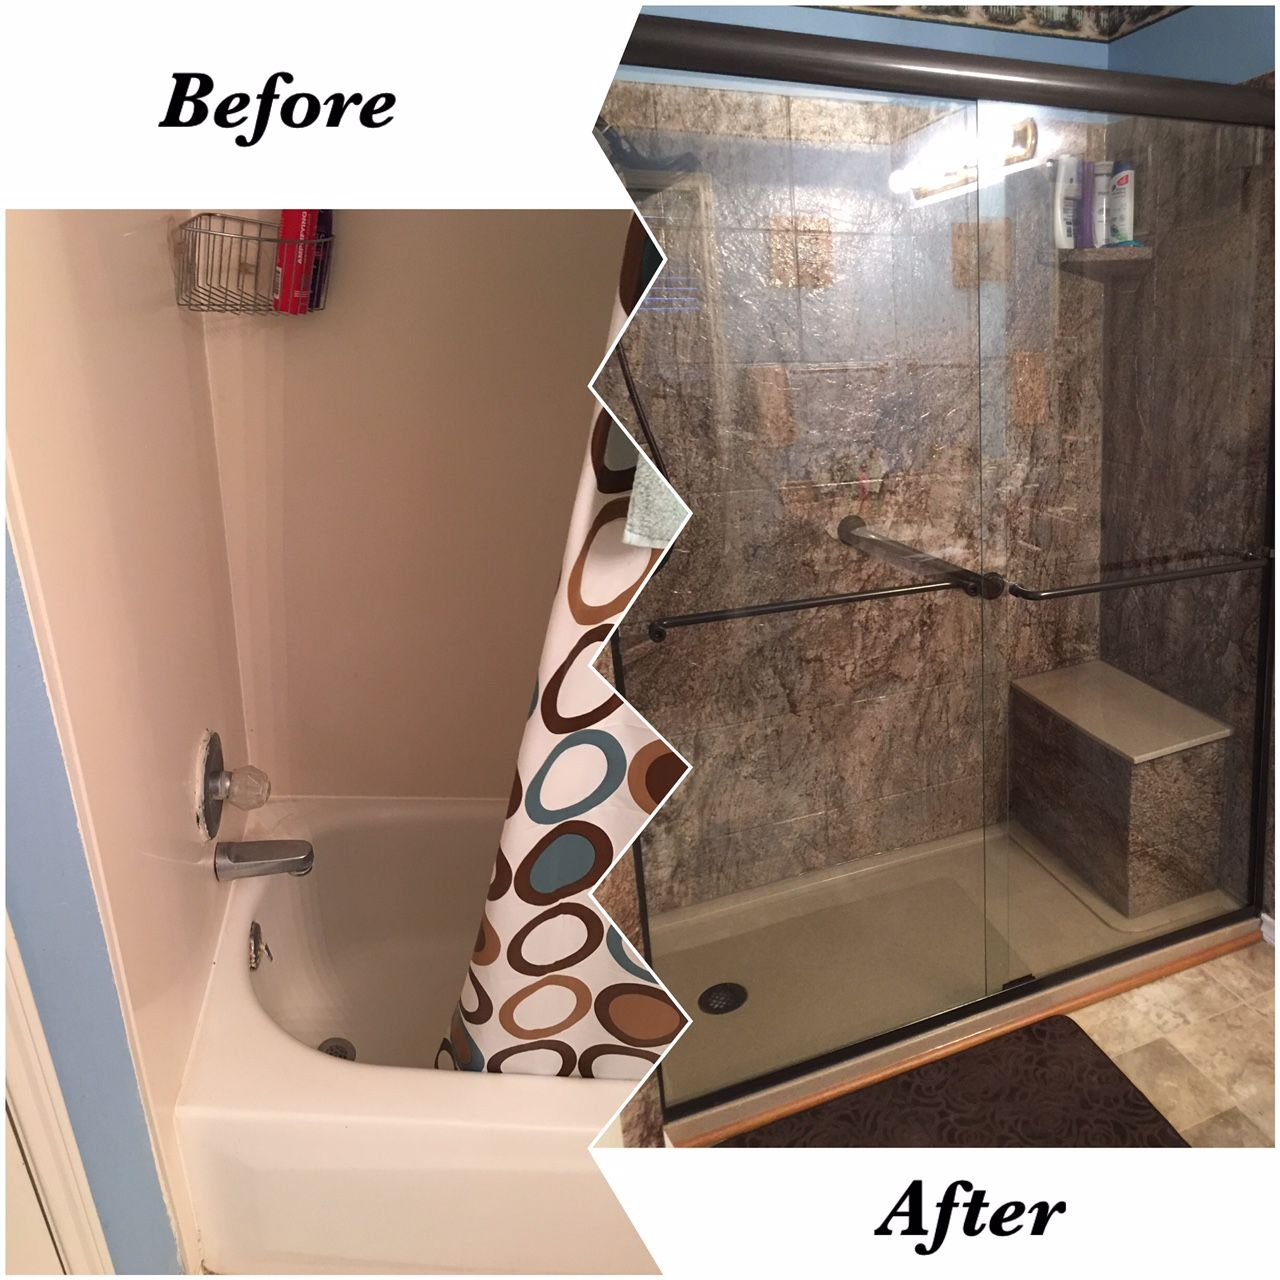 Vinyl walls for bathrooms - New Rebath 12 Slate Tahoe Granite Shower Wall System With Custom Onyx Bamboo Shower Base